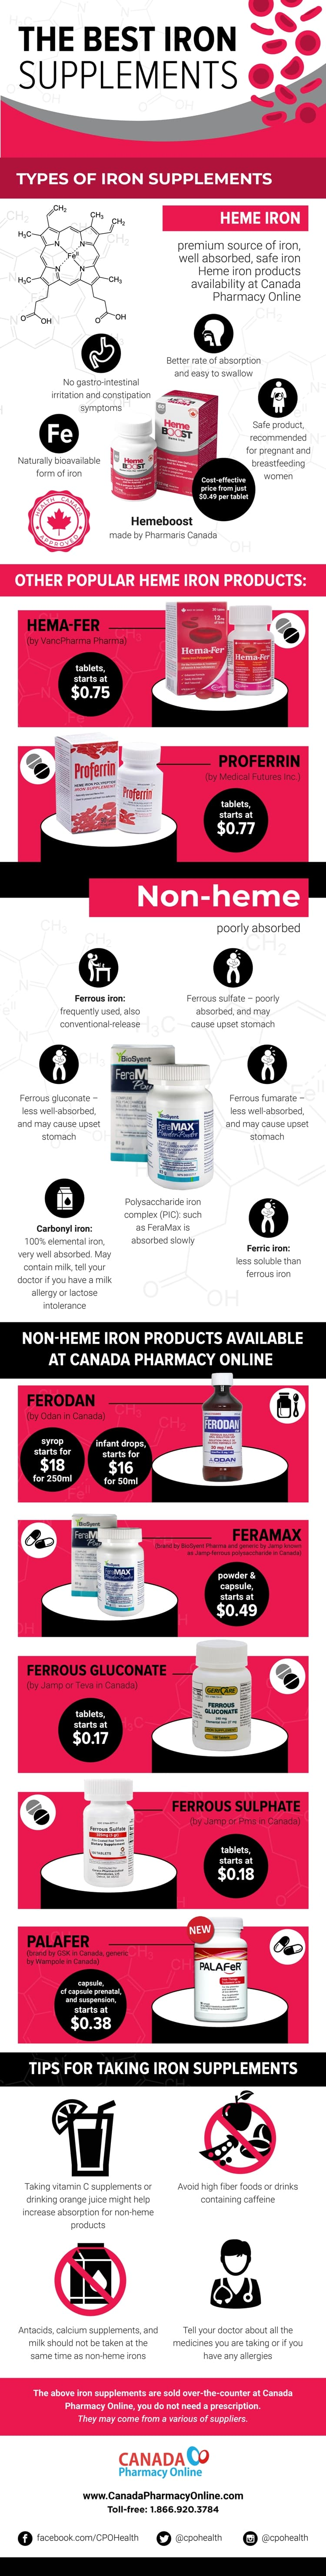 The Best Iron Supplements Infographic